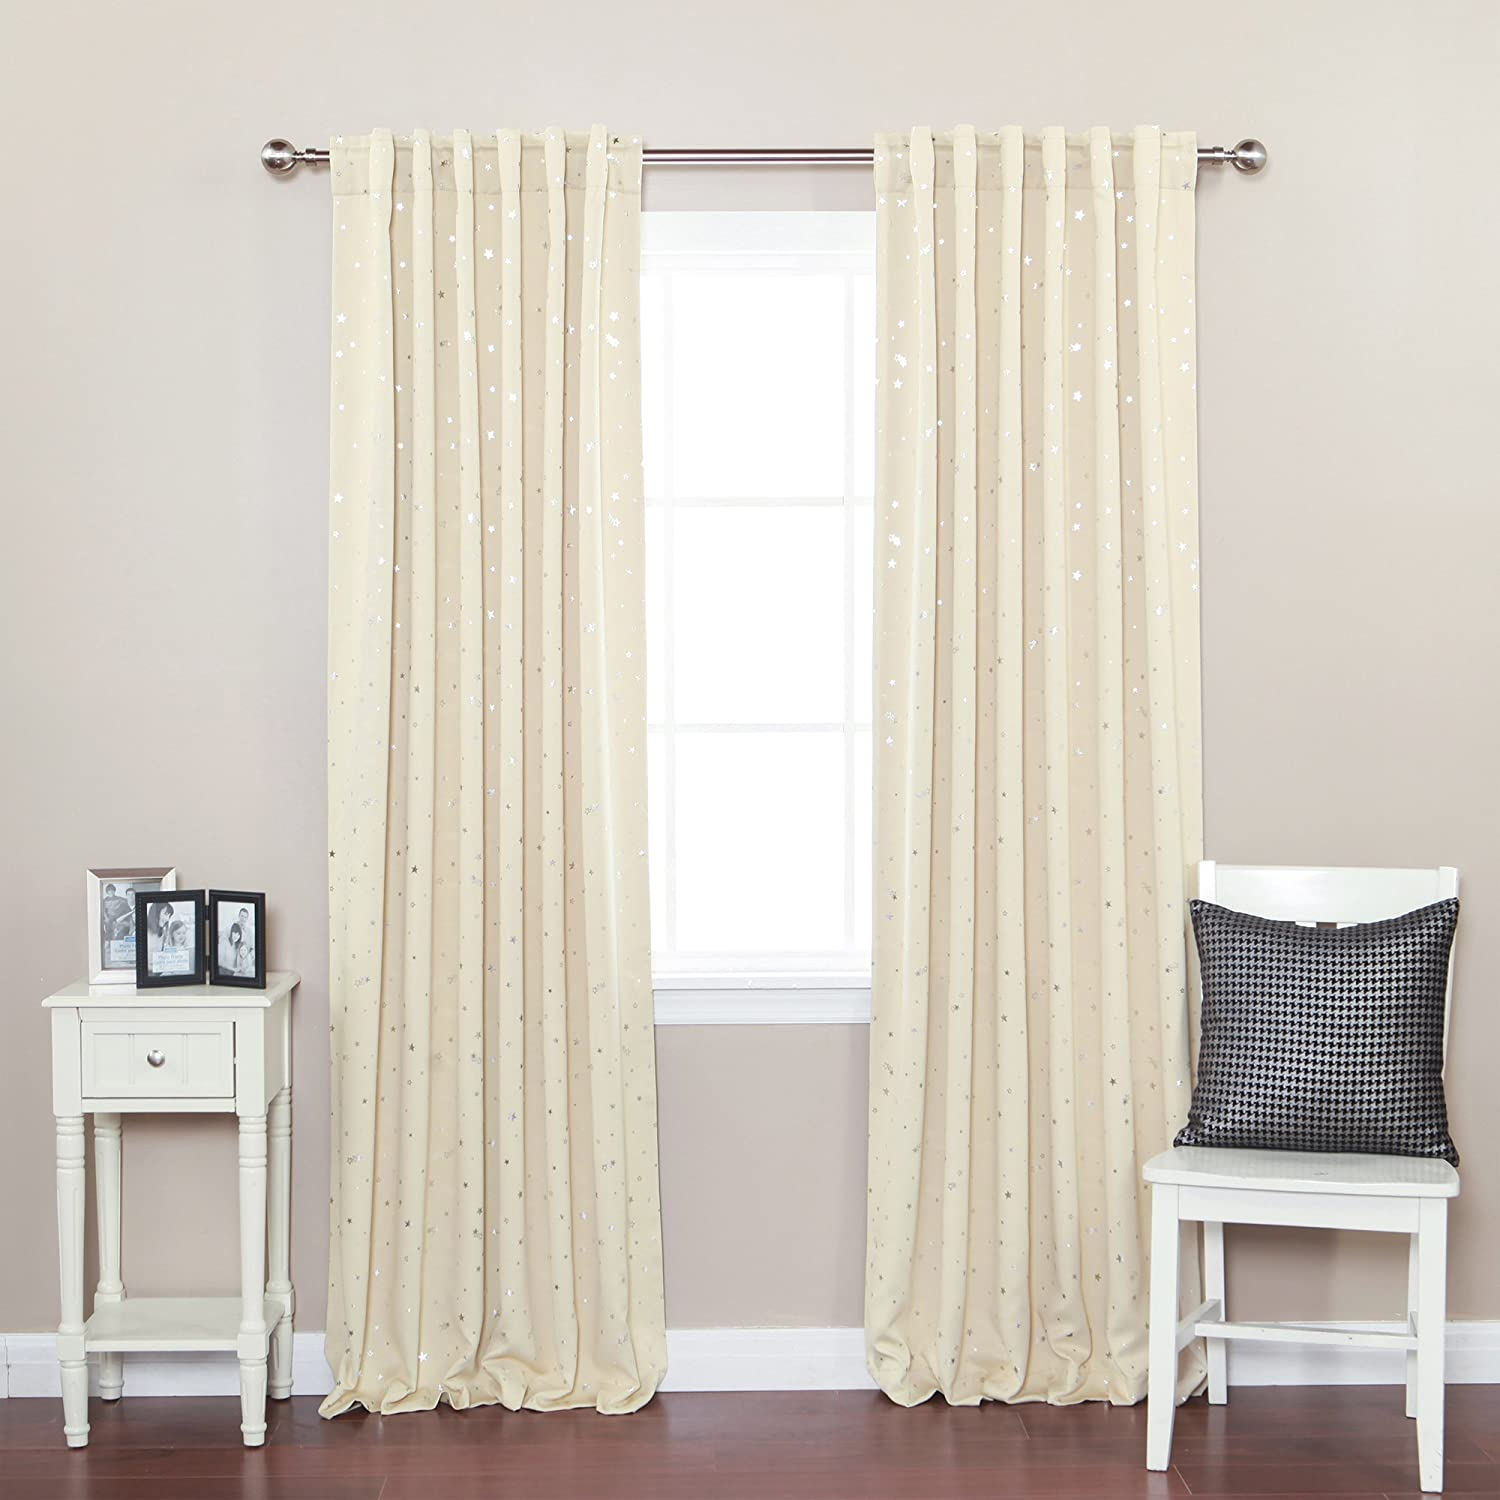 view may best on typically insulated guide blackout l reviewed different the curtain reviews current hours top price every updated deconovo buying thermal amazon it be black curtains